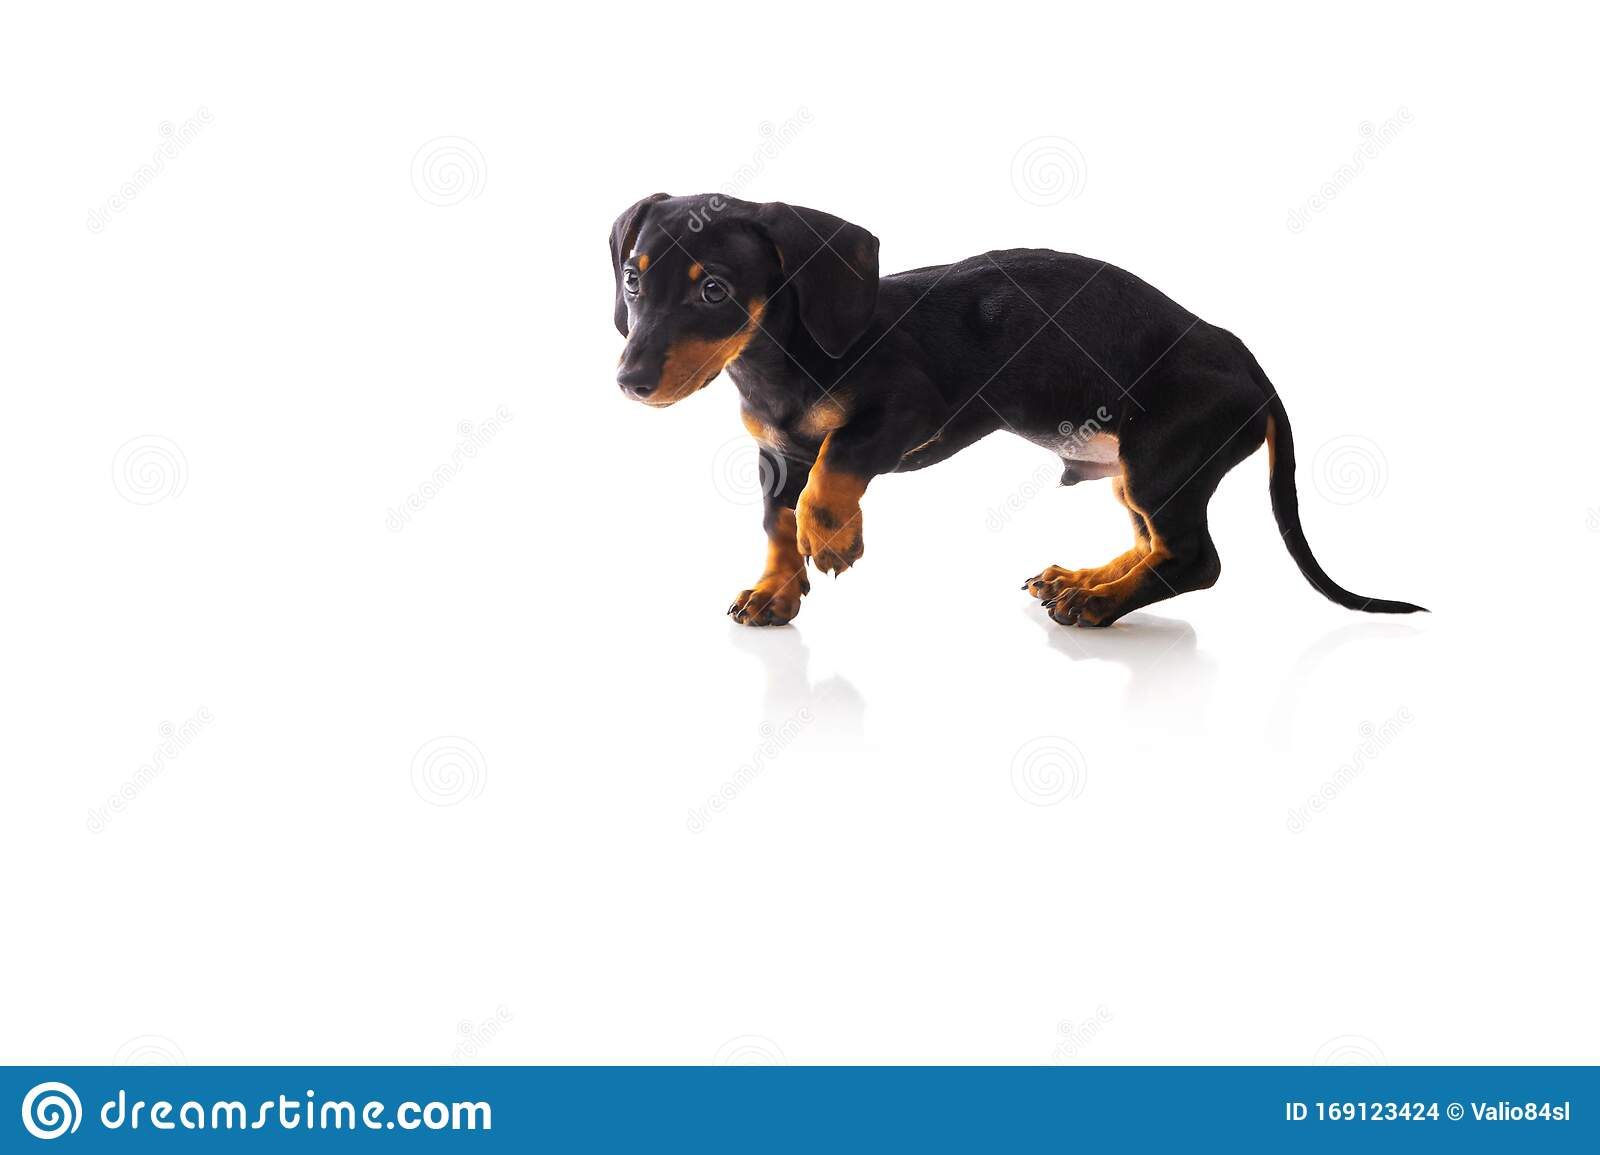 Funny Sausage Dog Dachshund Puppy Posing On White Background Stock Photo Image Of Background Looking 169123424